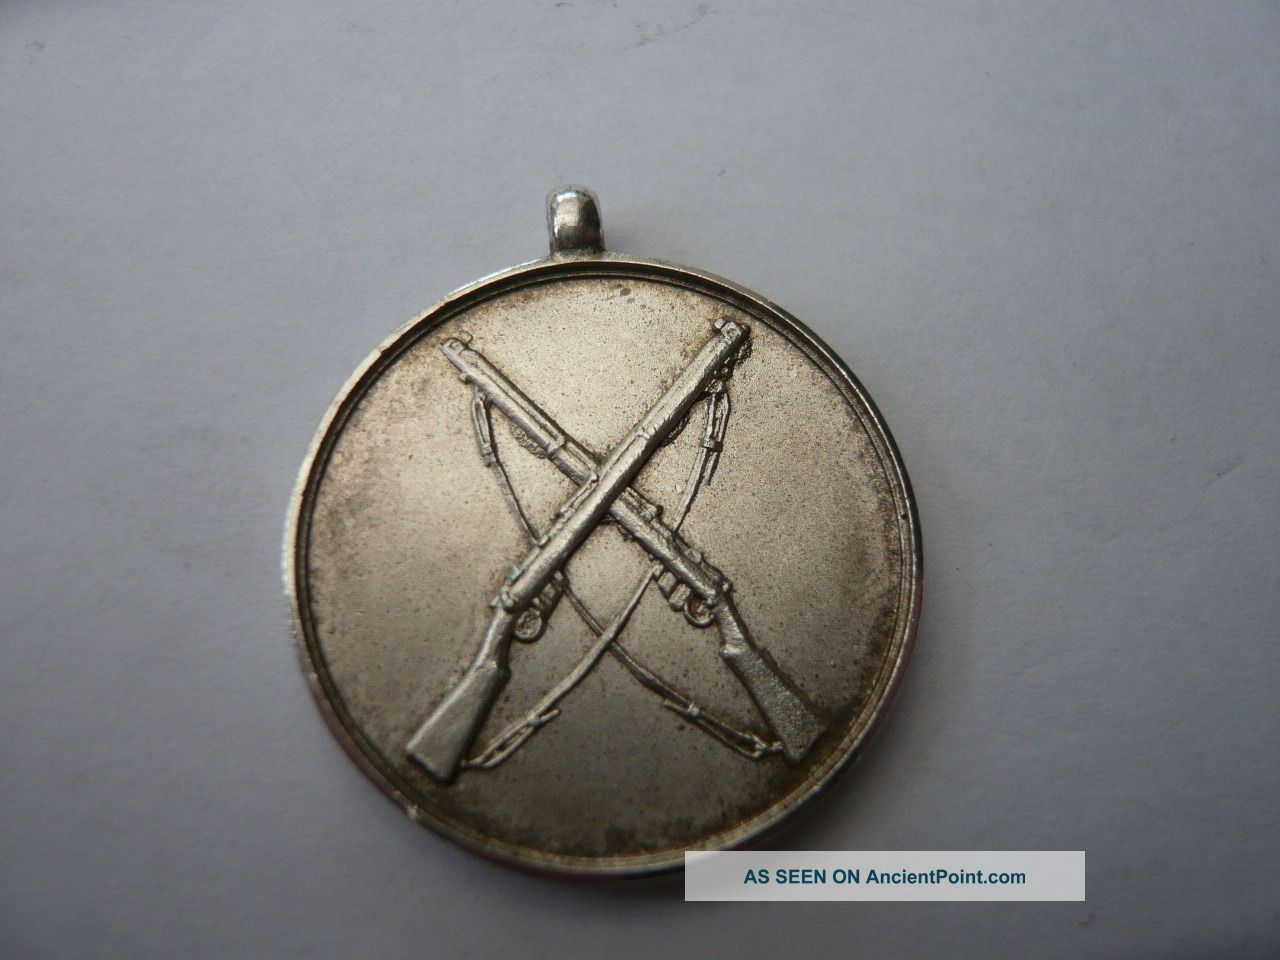 Vintage Old Military 2 Rifles Shooting Silver Pocket Watch Chain Fob Medal 1930 Pocket Watches/ Chains/ Fobs photo